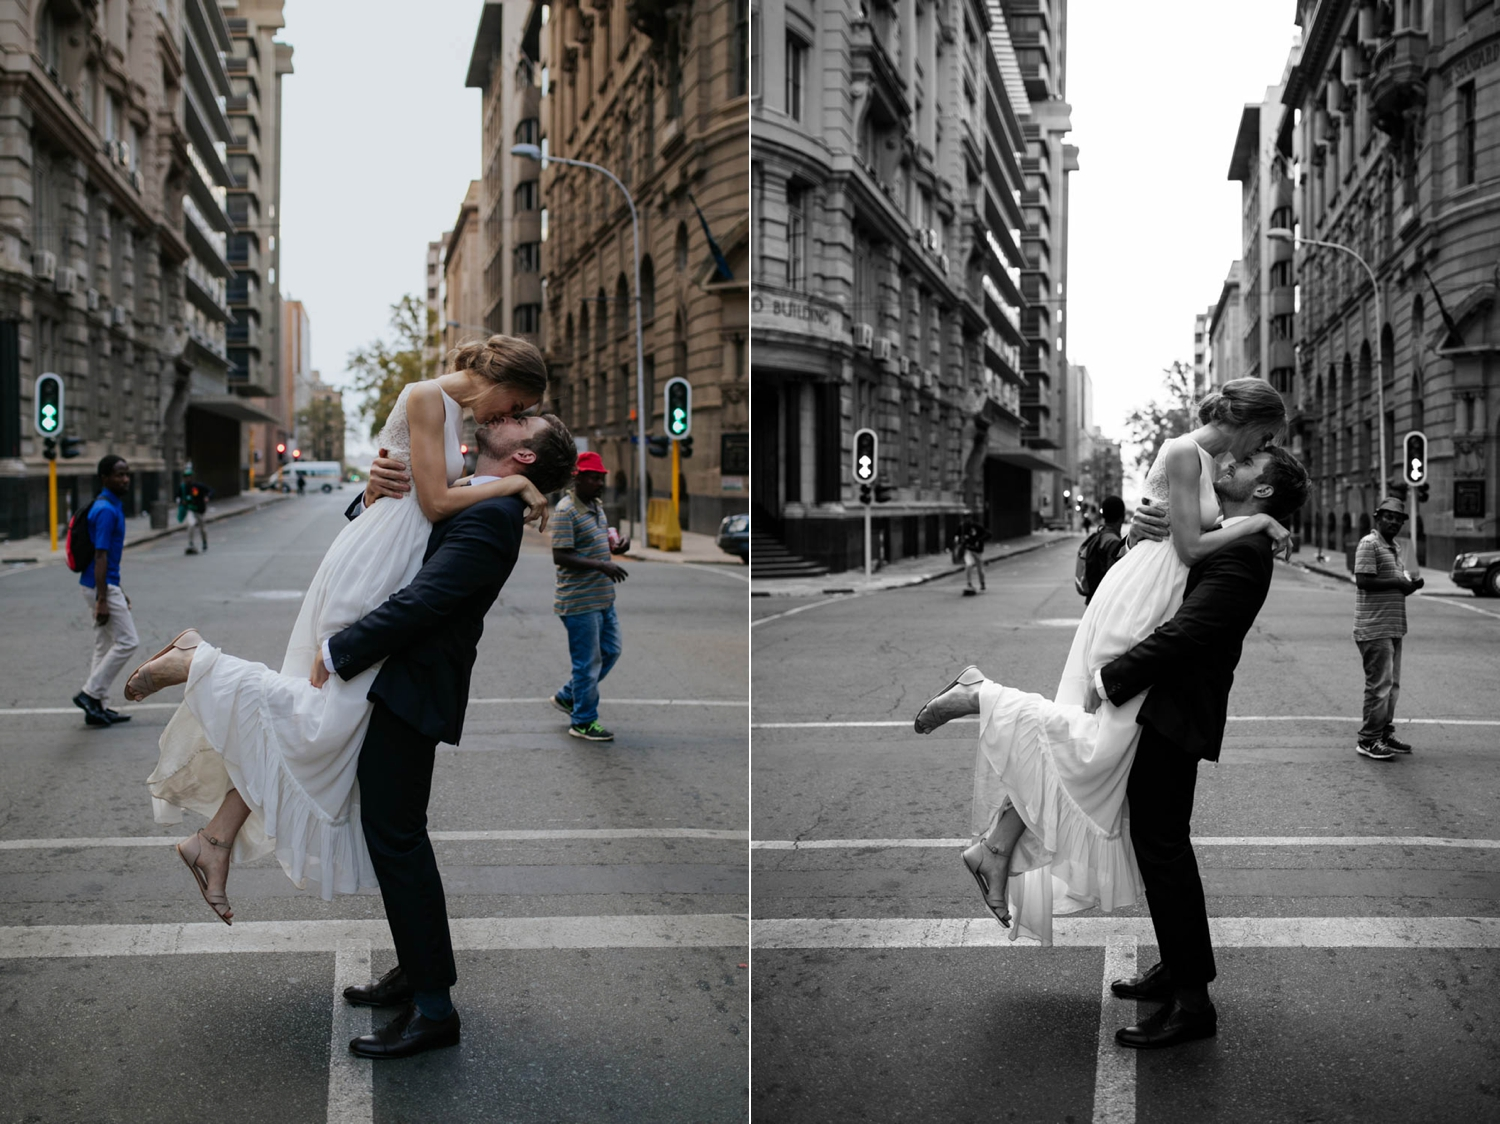 City Wedding Photography Portrait Photography Ideas